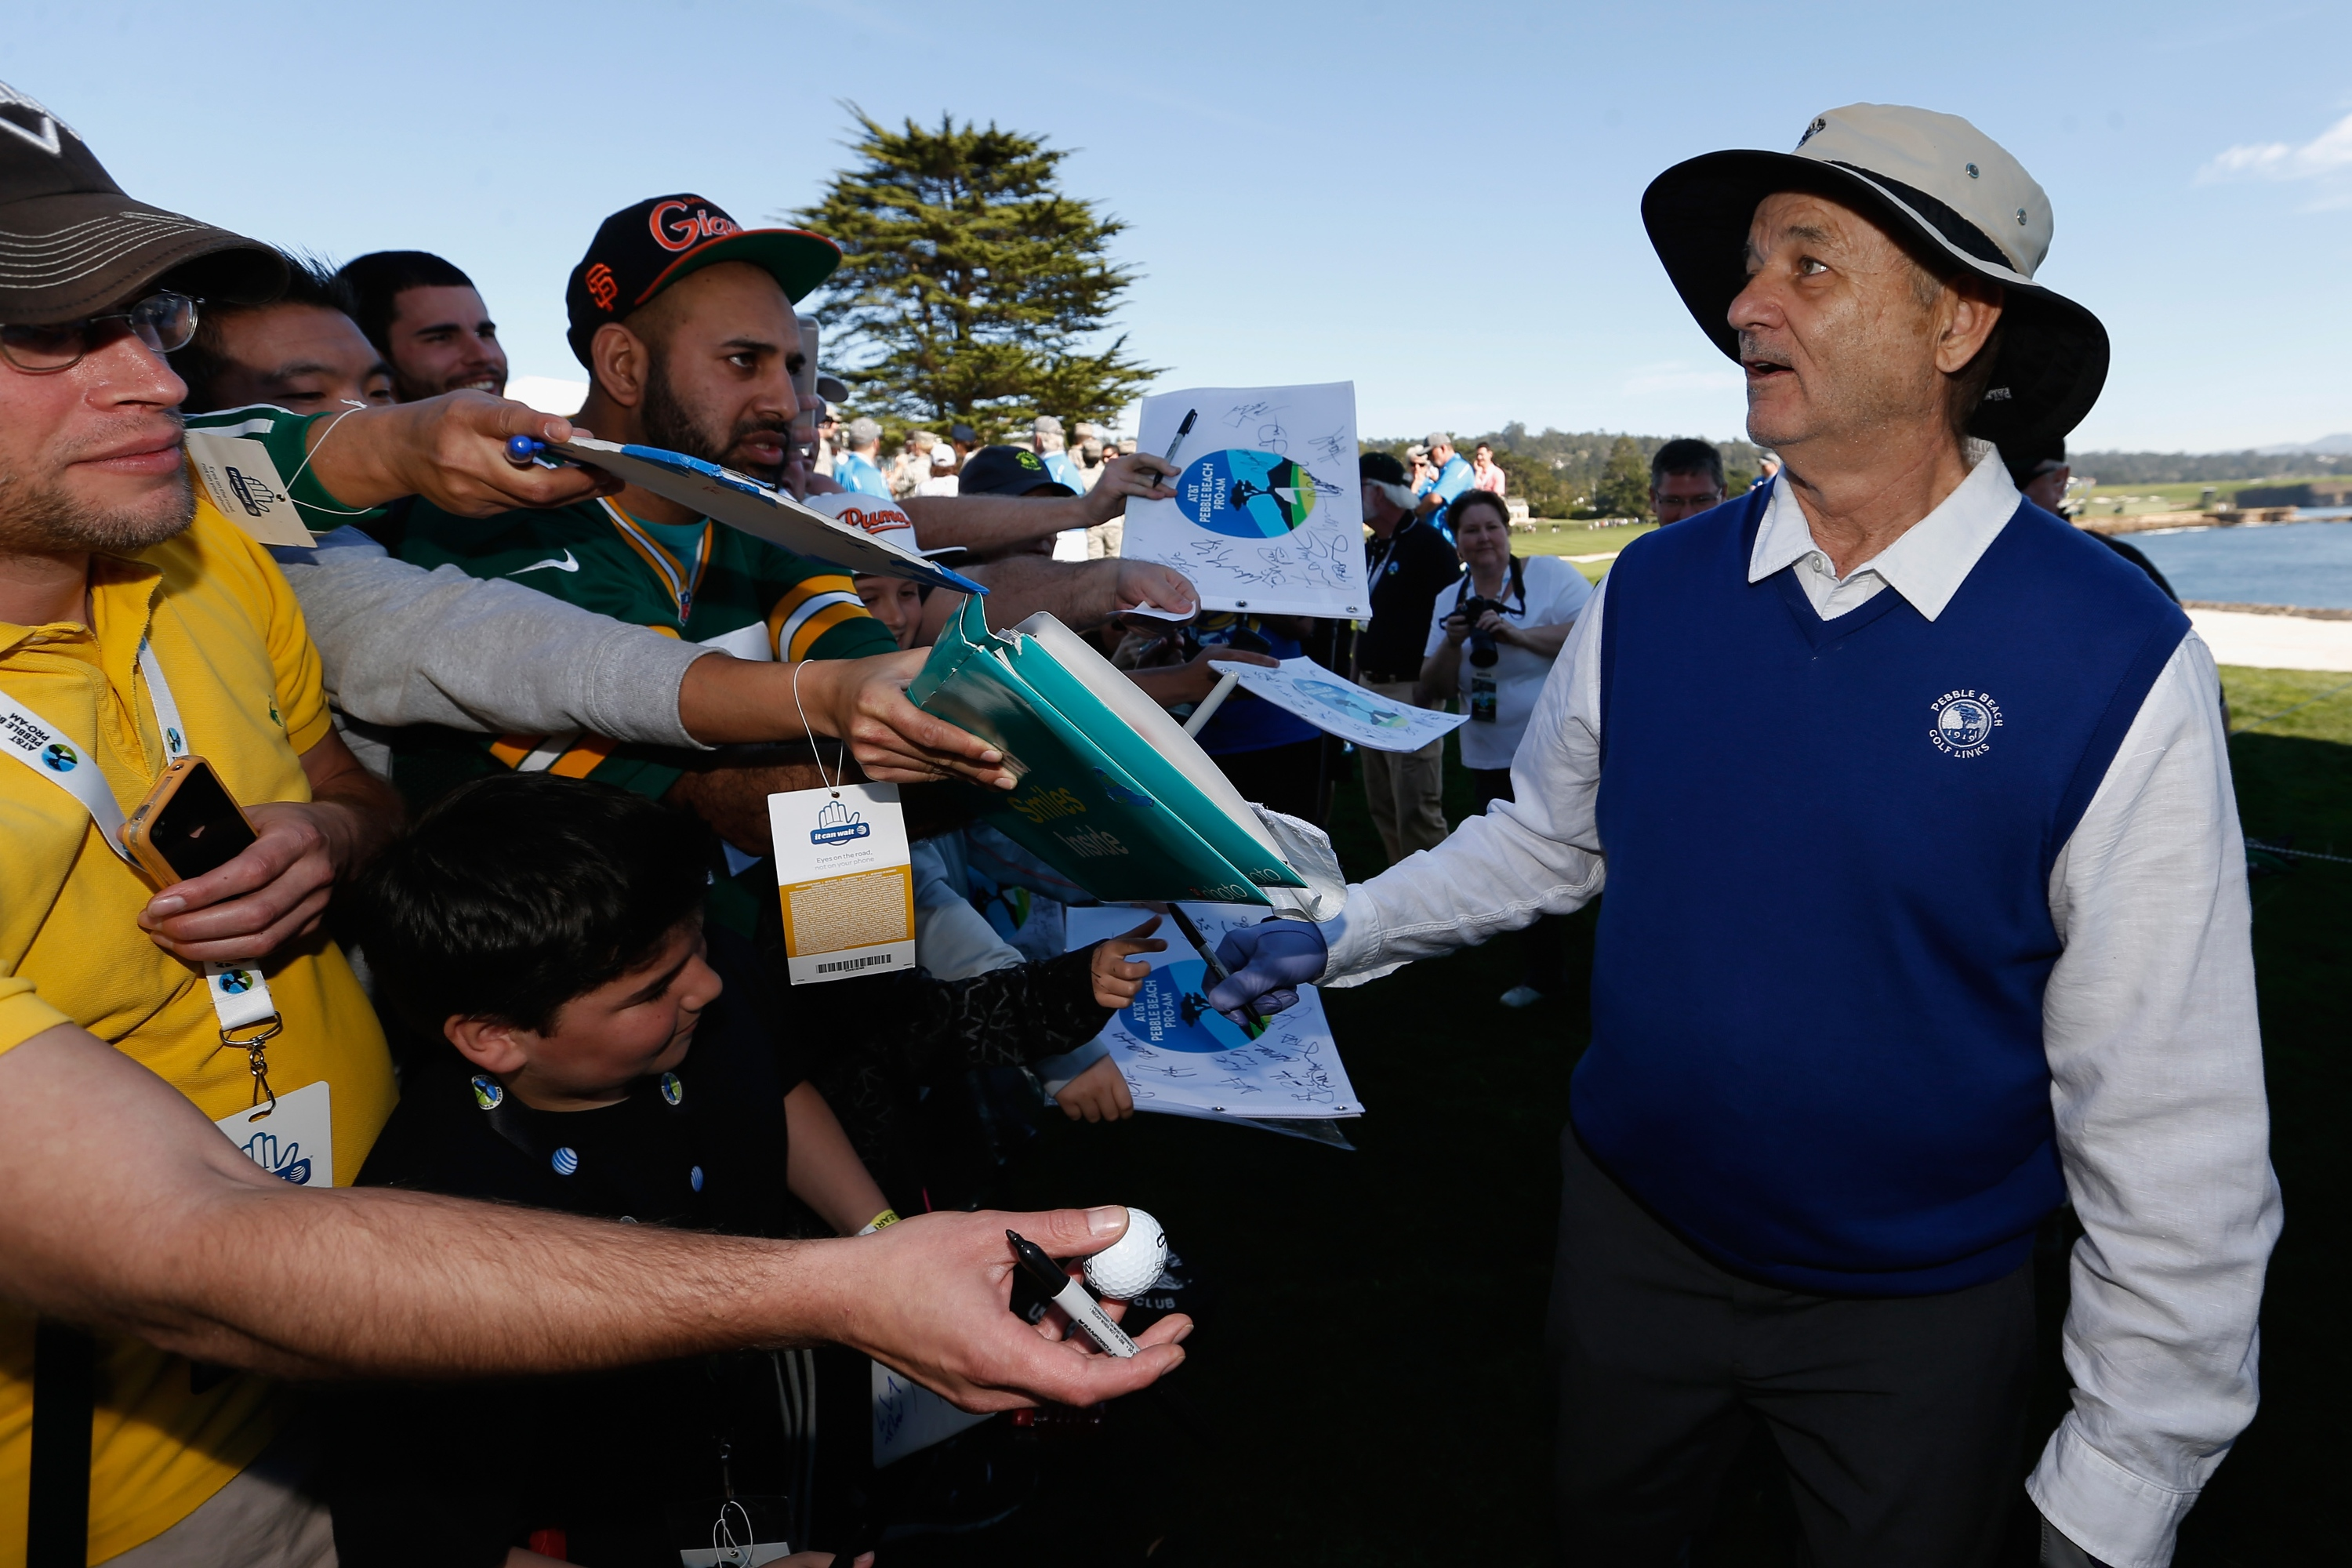 Comedian Bill Murray at the AT&T Pebble Beach Pro-Am on Wednesday. (Getty Images)